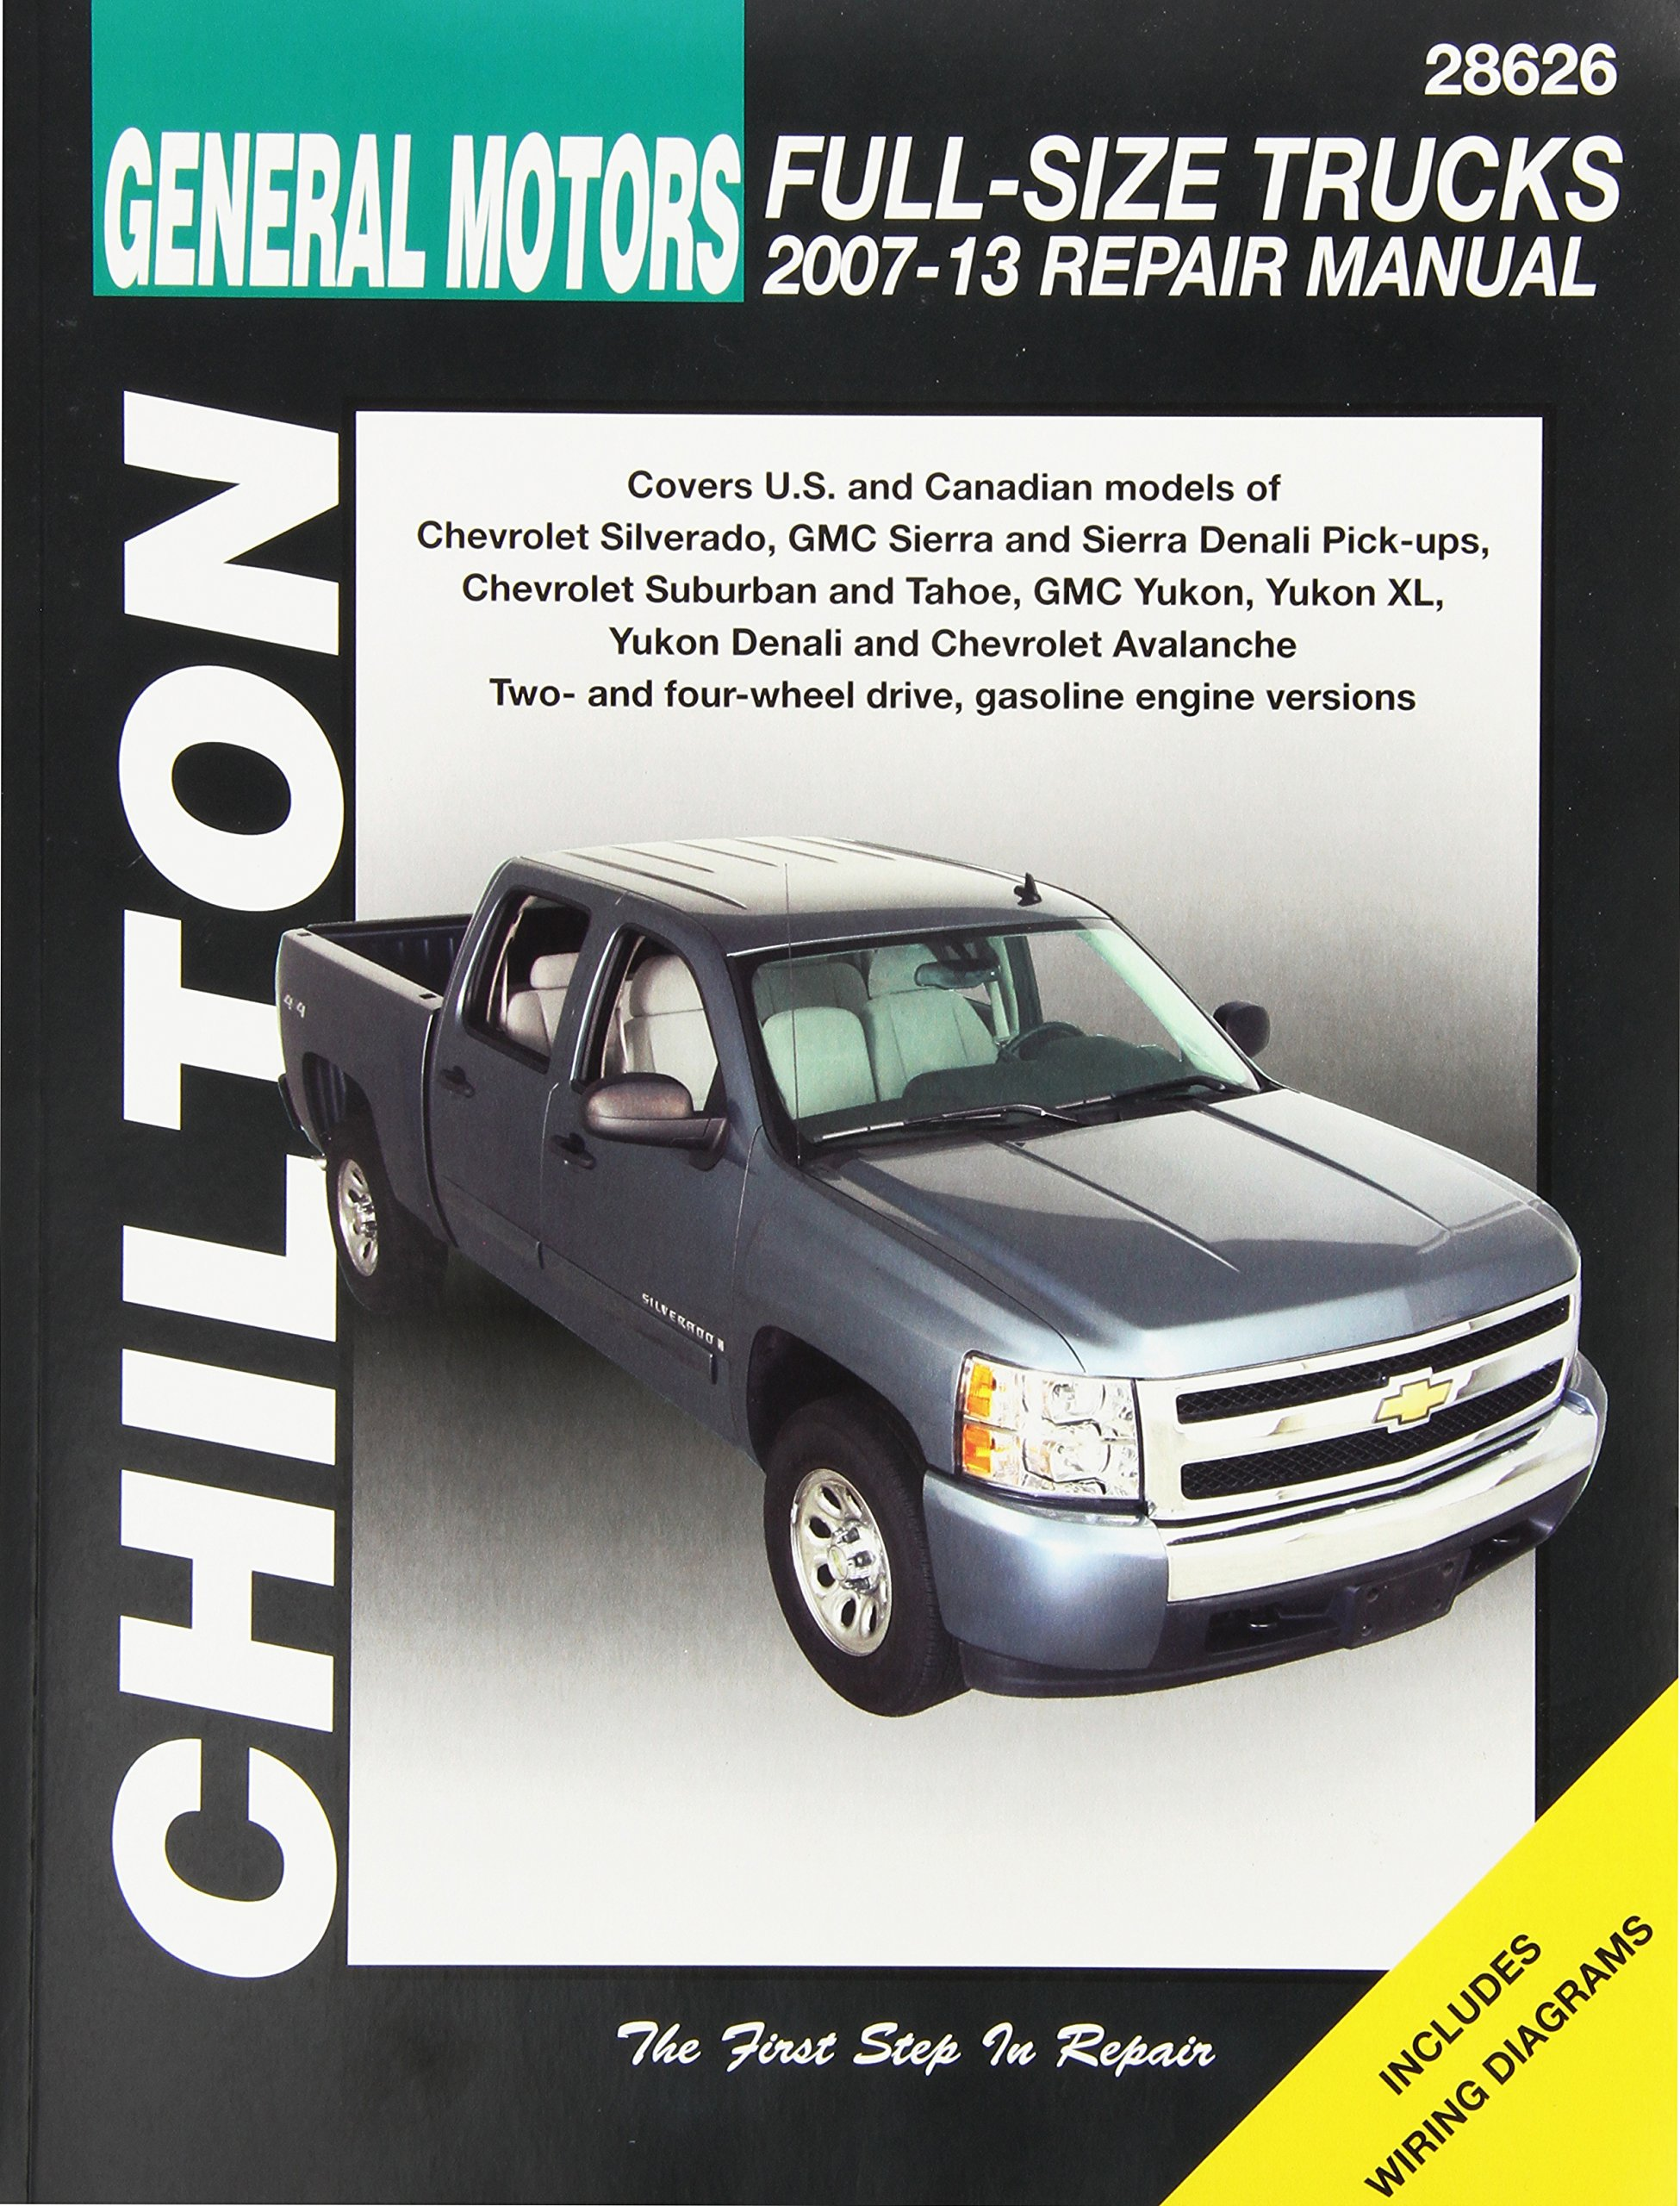 2003 chevrolet silverado 2500hd owners manual best setting rh ourk9 co owners manual for 03 chevy silverado owners manual 2000 chevy silverado